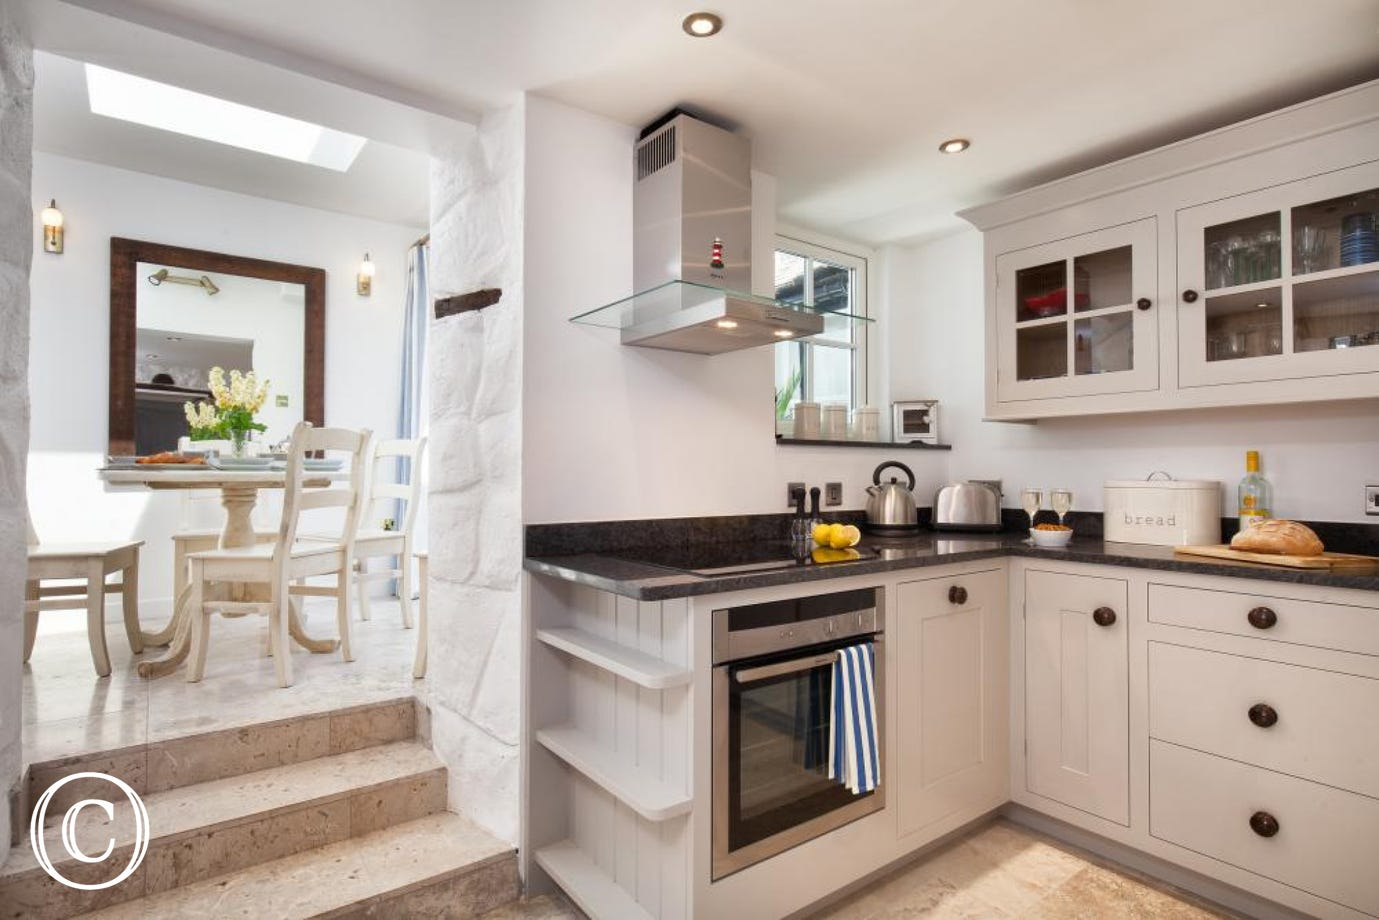 Spacious cottage kitchen with 3 steps to the elegant breakfast room.